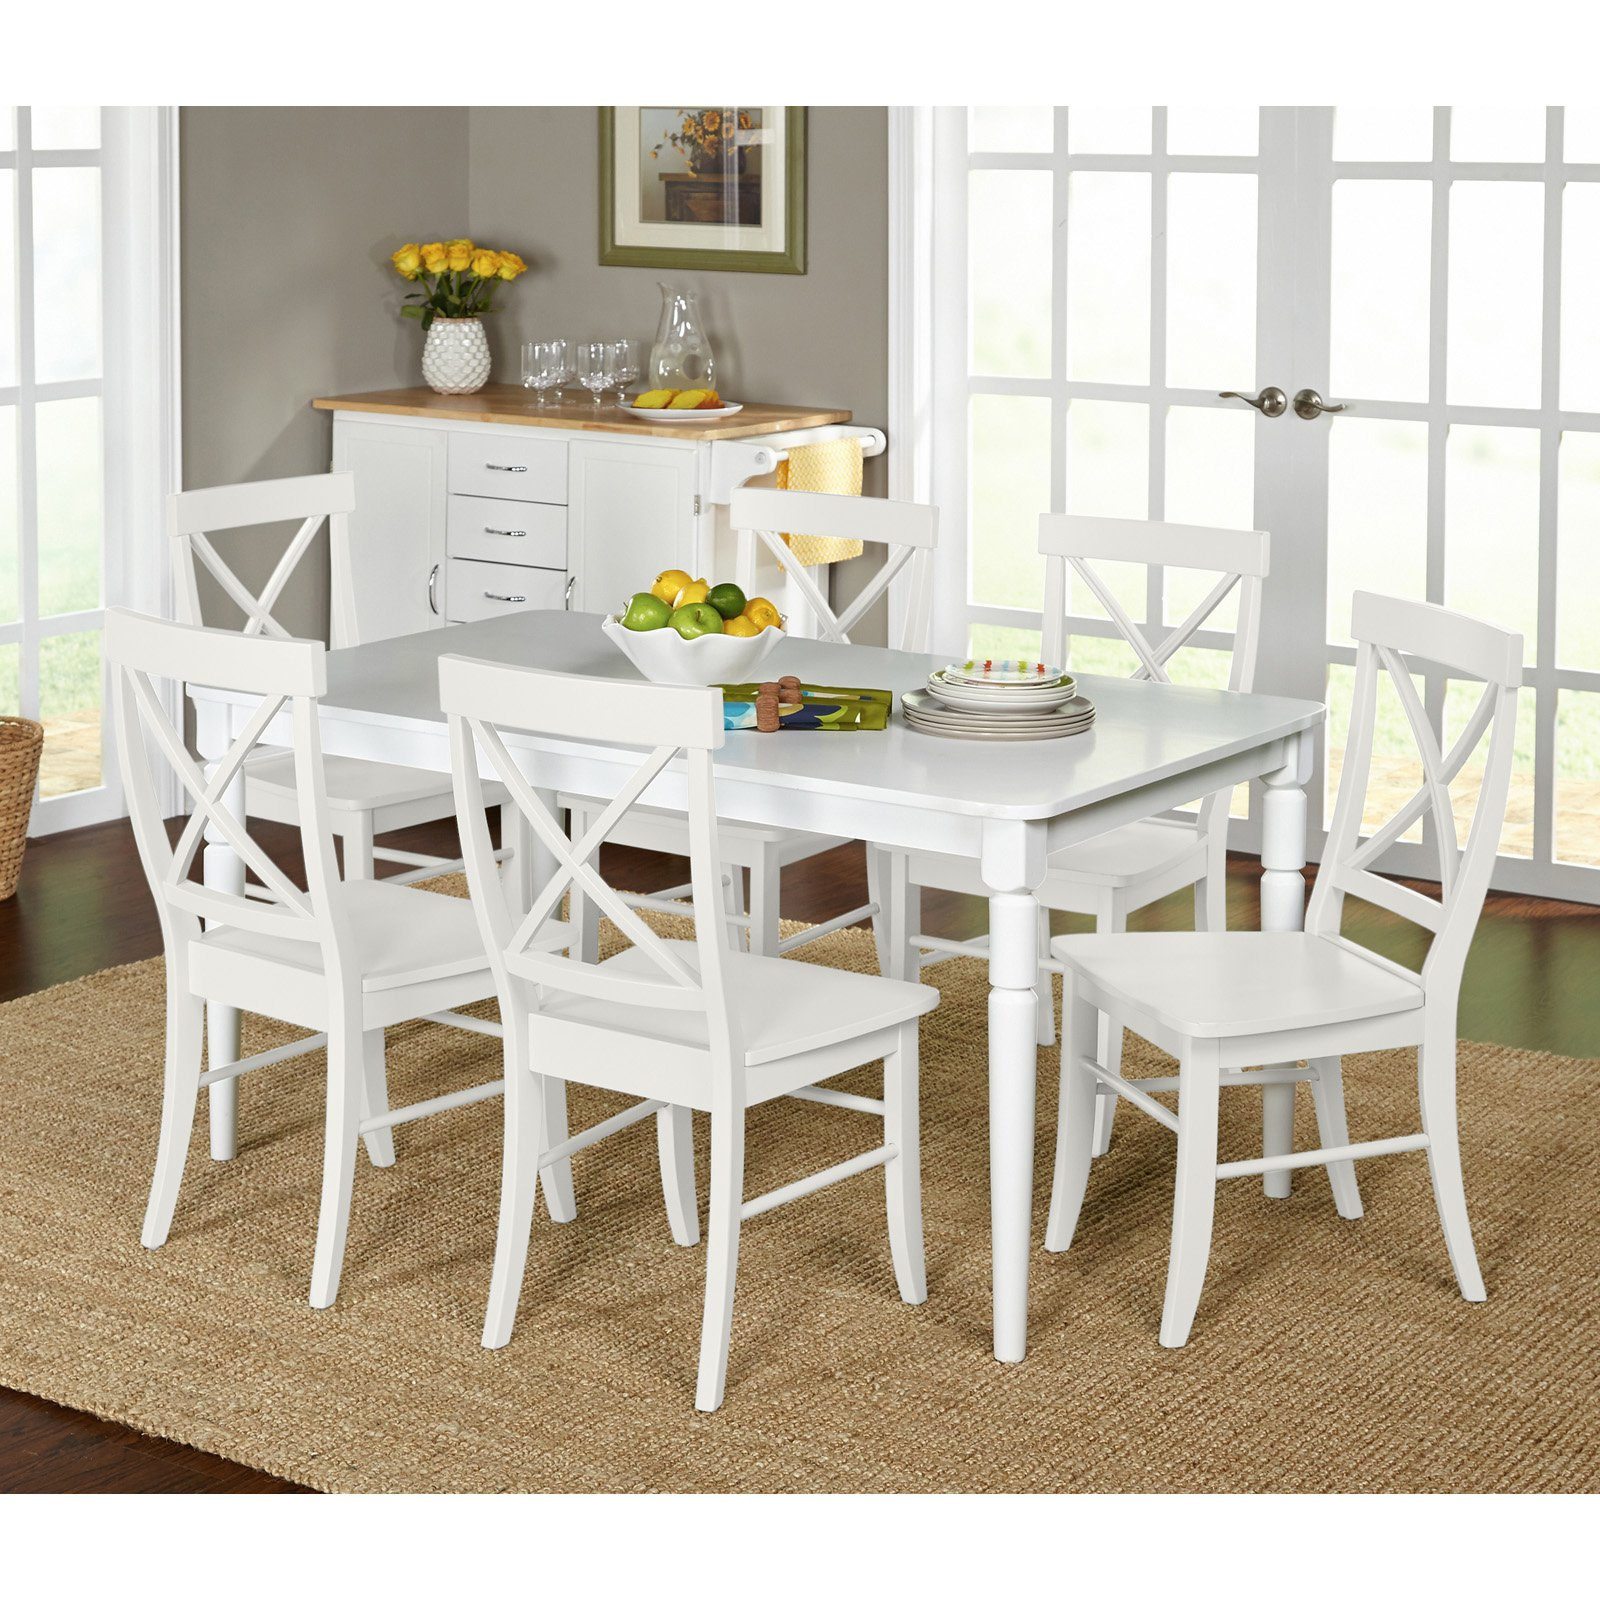 Target Marketing Systems Albury 7 Piece Dining Table Set   Walmart.com